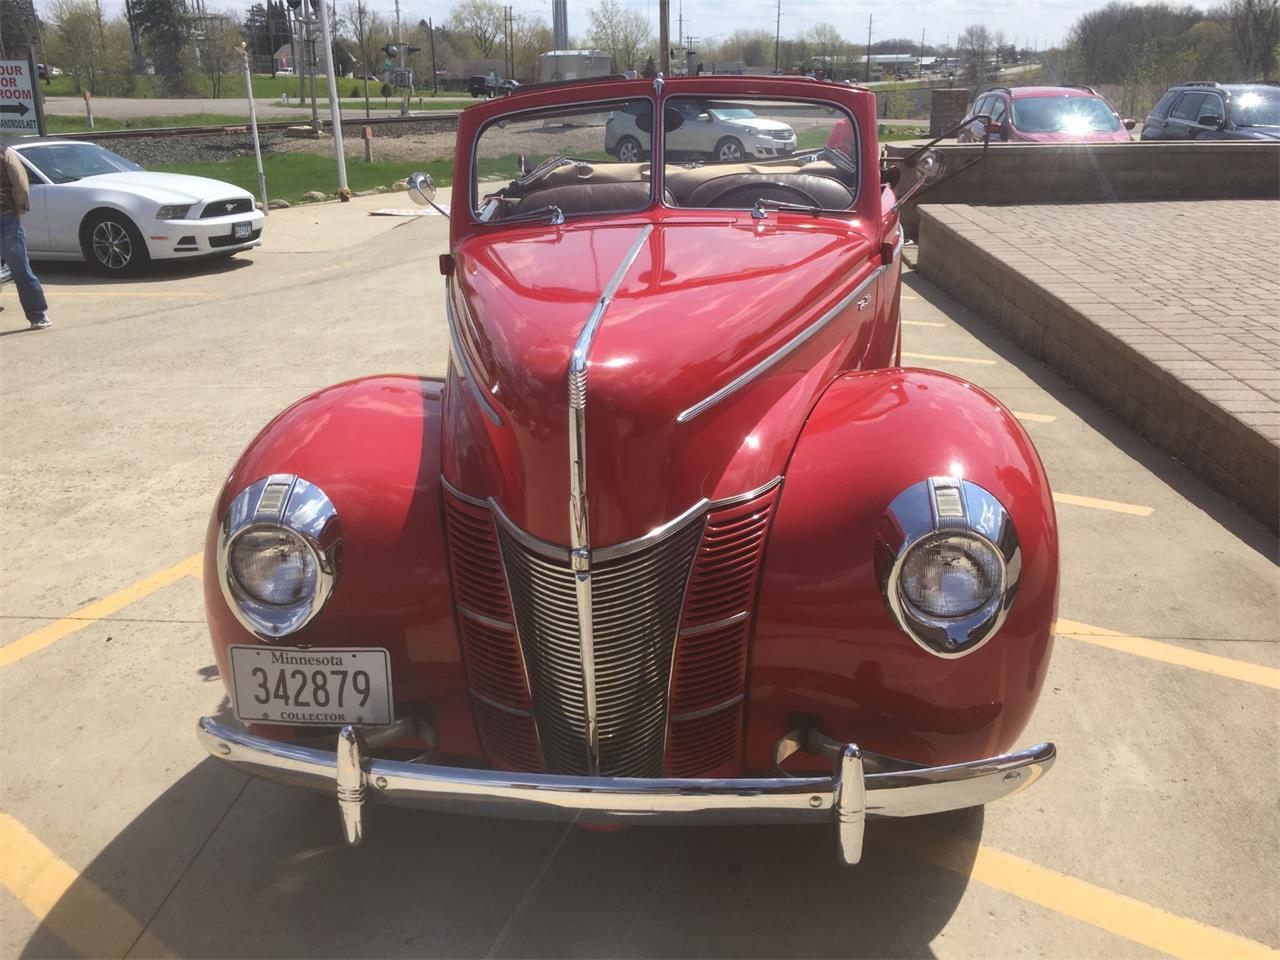 Large Picture of 1940 Ford Deluxe located in Minnesota - $43,500.00 Offered by Classic Rides and Rods - Q4PG